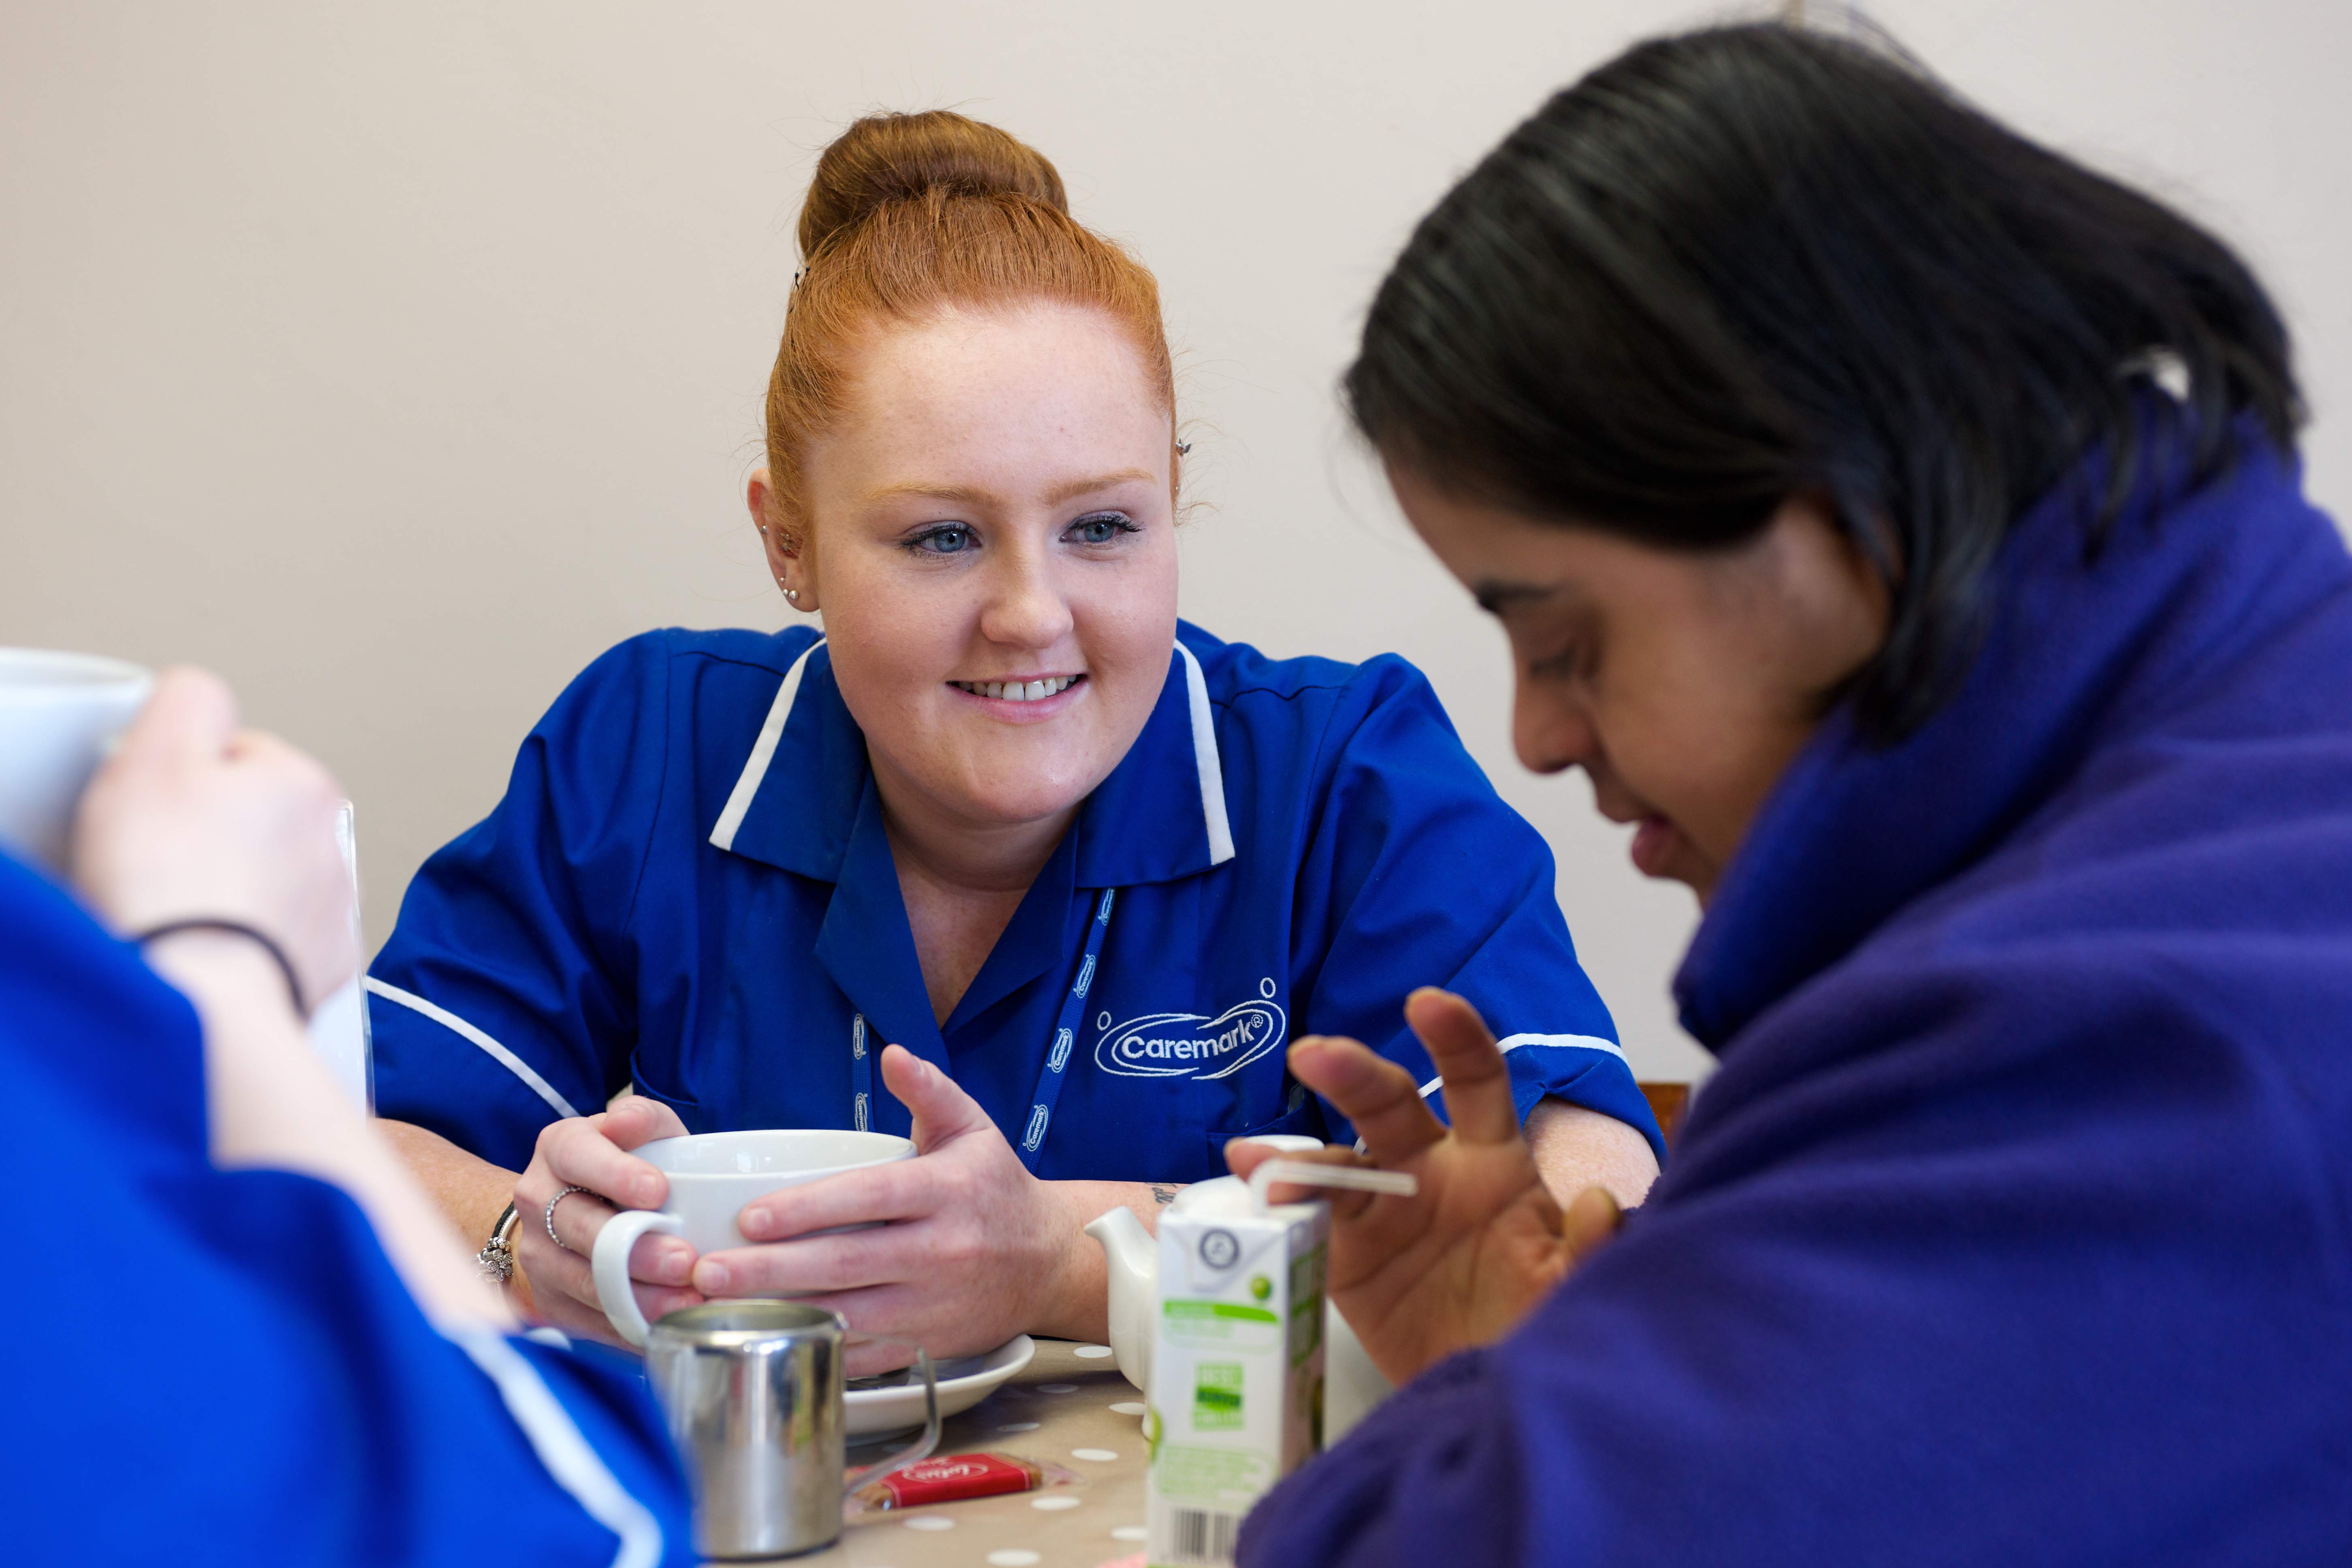 Caremark Cork require Care and Support Workers  for Midleton and surrounding areas